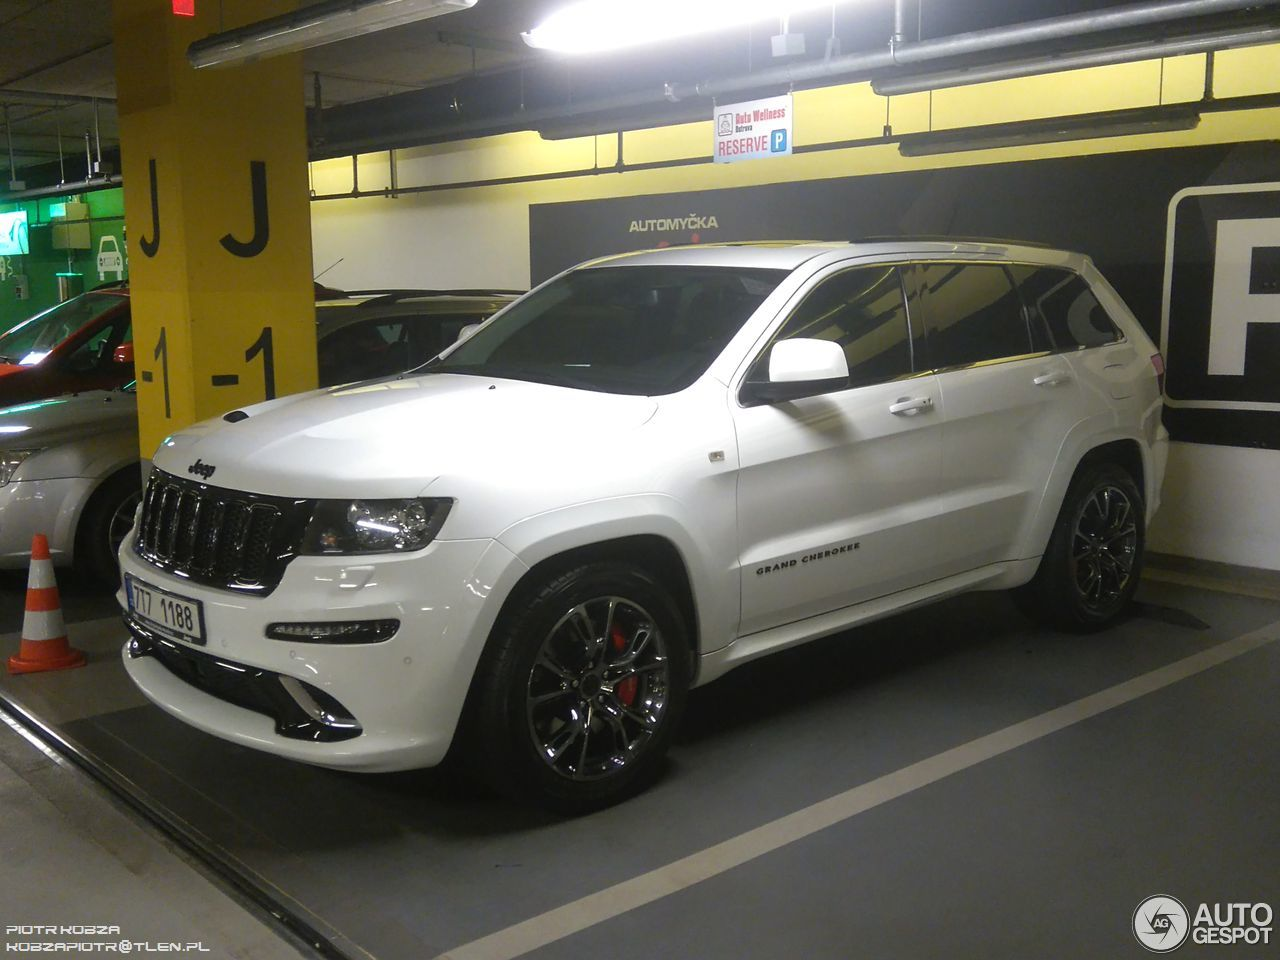 jeep grand cherokee srt 8 limited edition 17 june 2016 autogespot. Black Bedroom Furniture Sets. Home Design Ideas